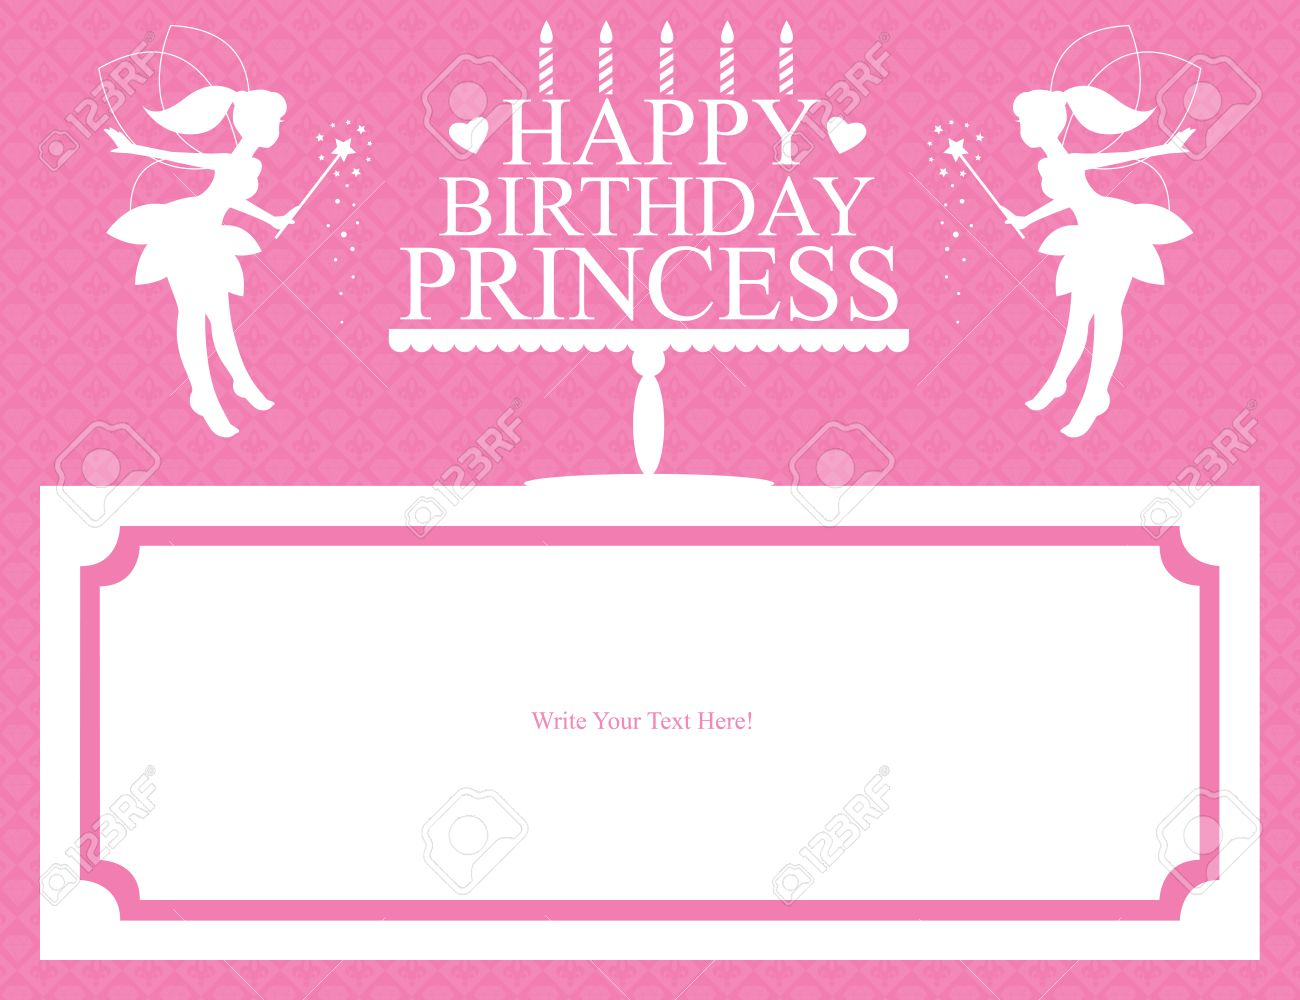 princess birthday card royalty free cliparts, vectors, and stock, Birthday card